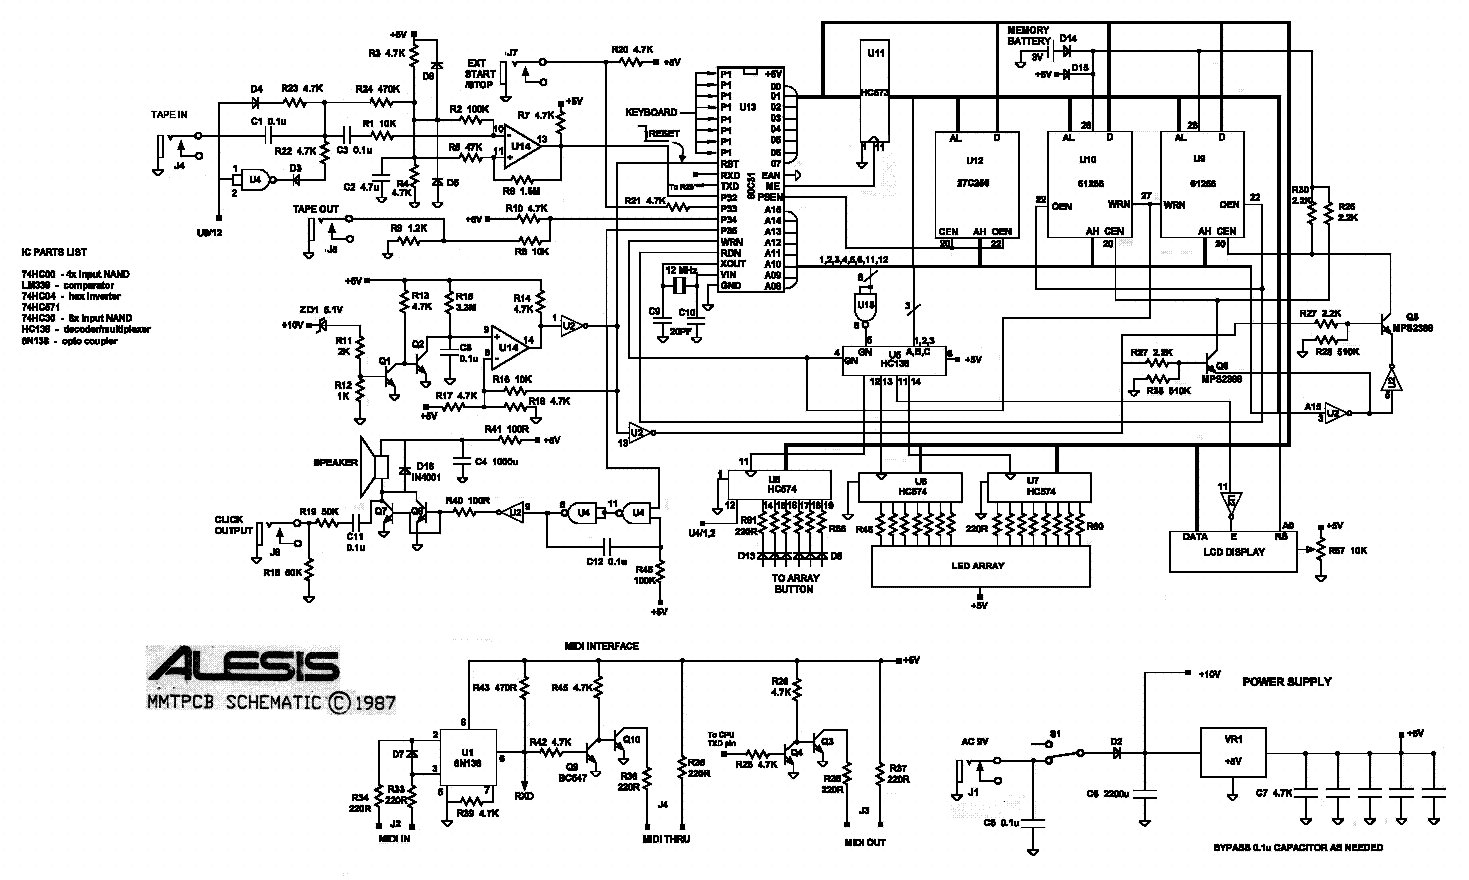 Alesis Mmt8 Rev 2 Schematic Service Manual Download